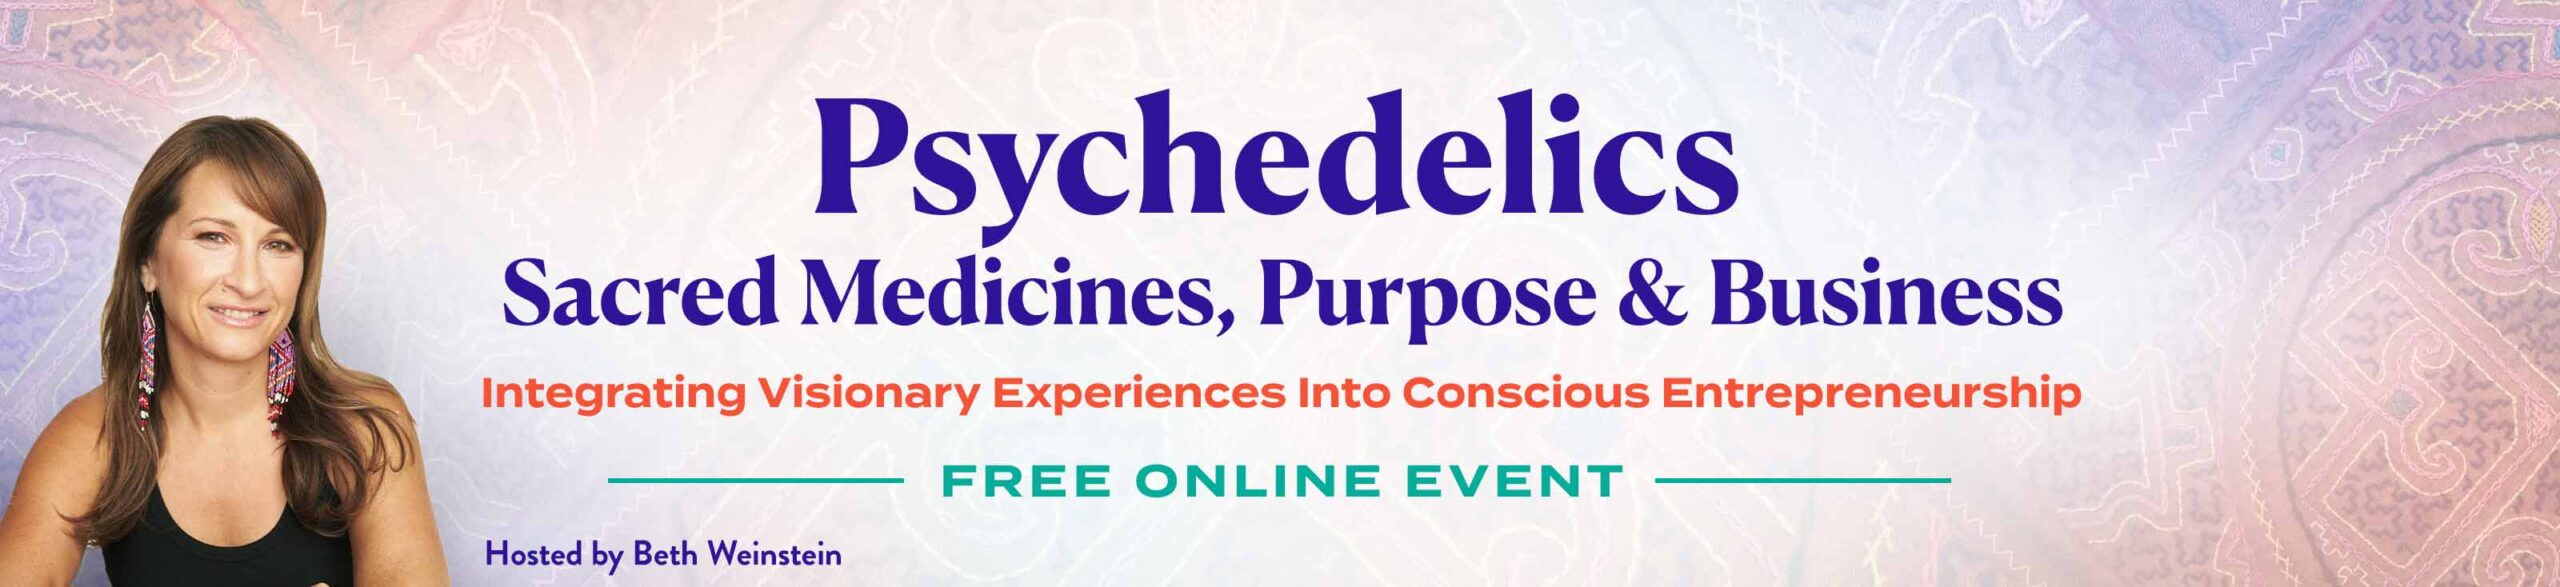 Psychedelics, Sacred Medicines, Purpose & Business